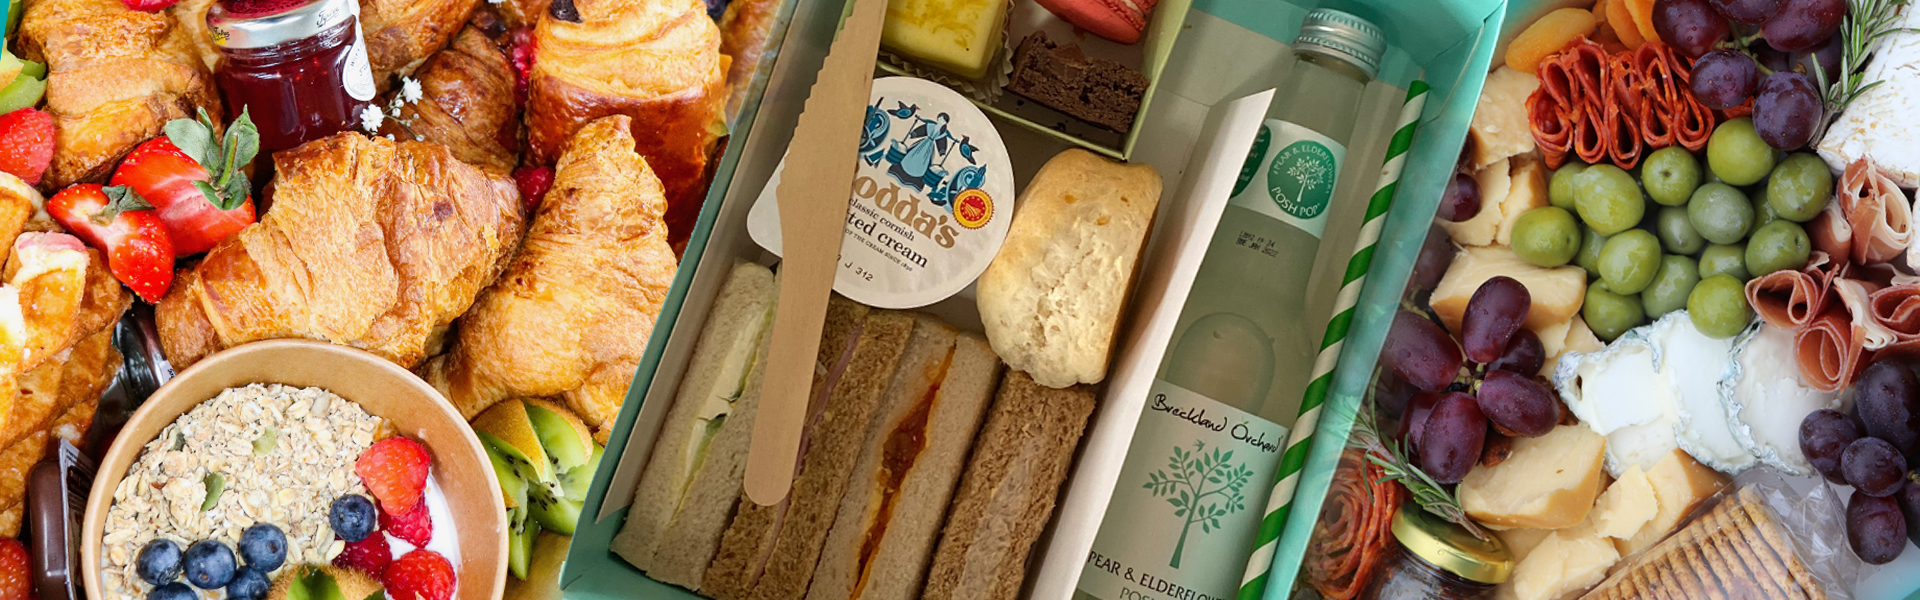 New All On Boards Picnic Boxes